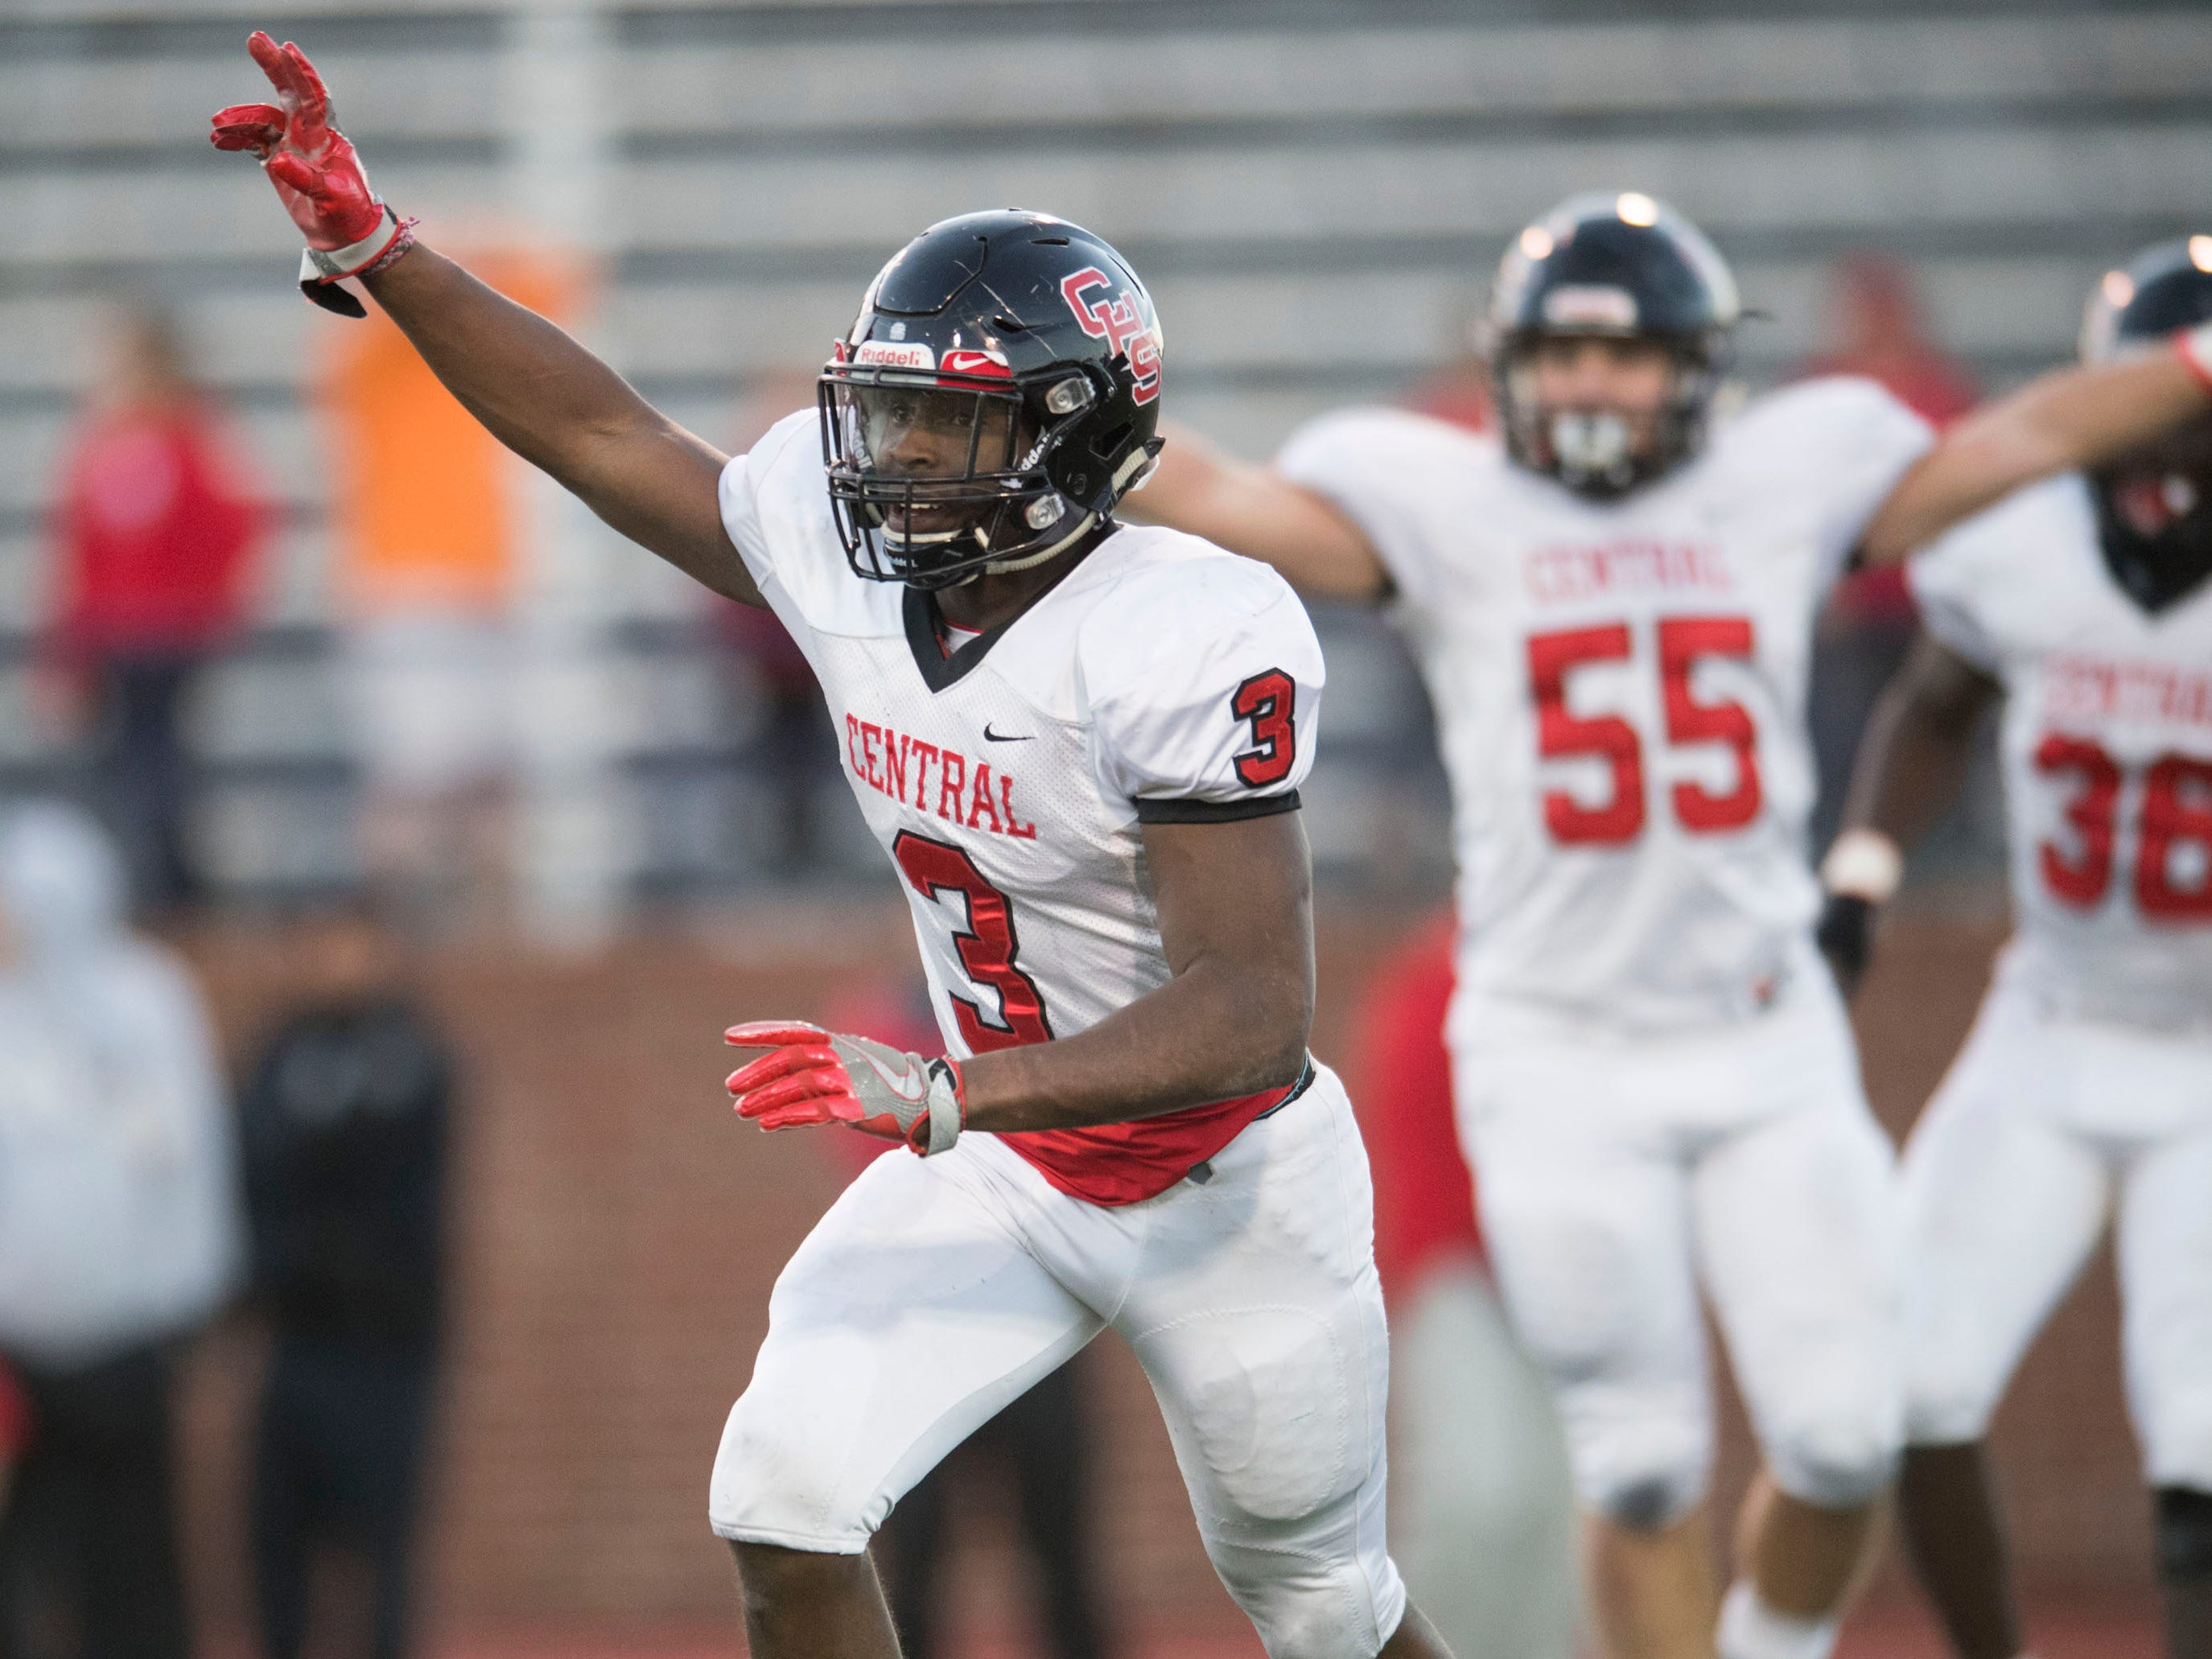 Knoxville Central's Xavier Washington (3) celebrates as the clock runs down in Central's victory over Henry County in the Class 5A BlueCross Bowl at Tucker Stadium on Sunday, December 2, 2018.